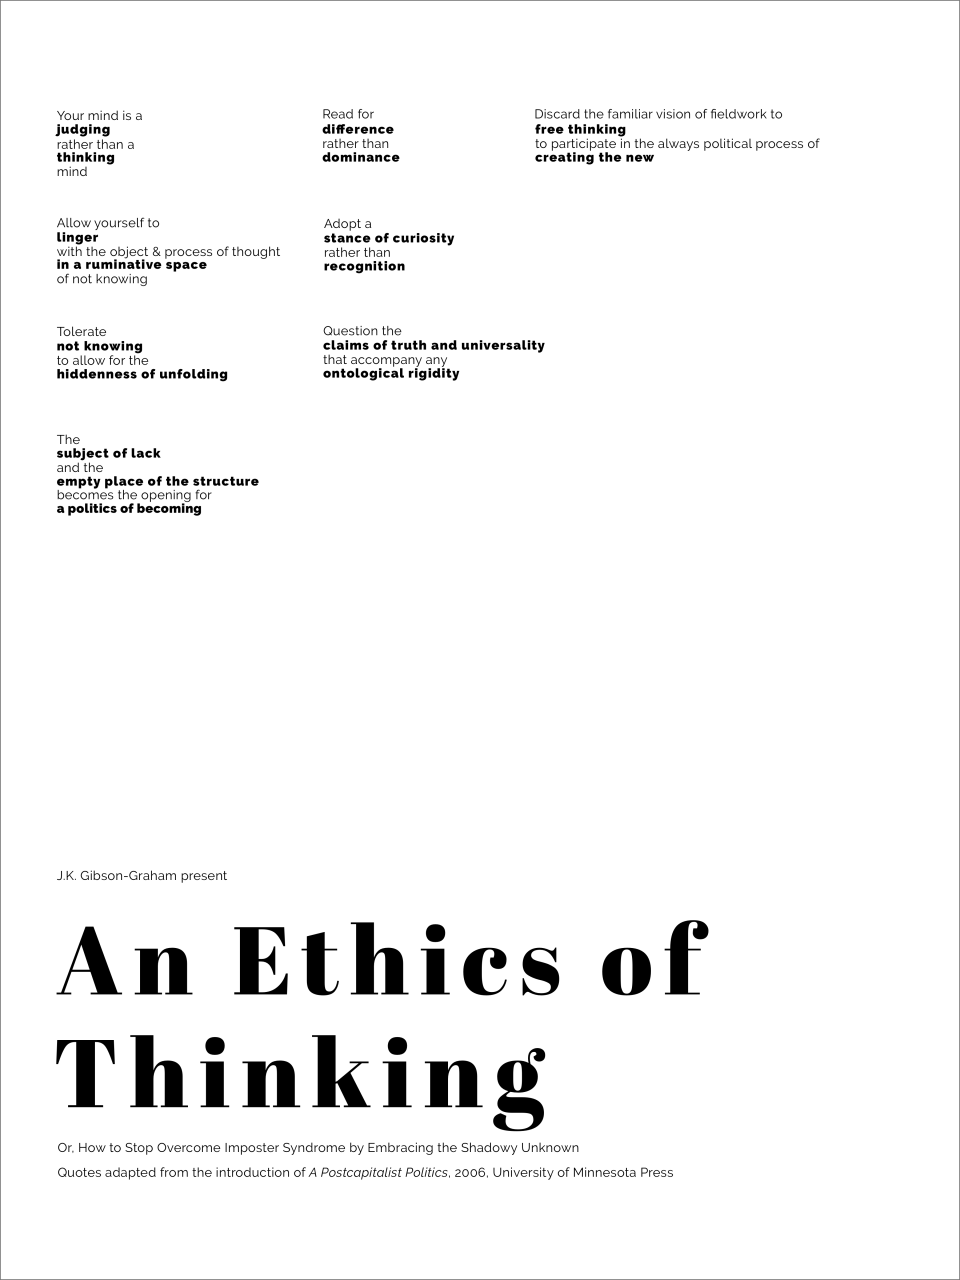 Ethics of Thinking3x-Border